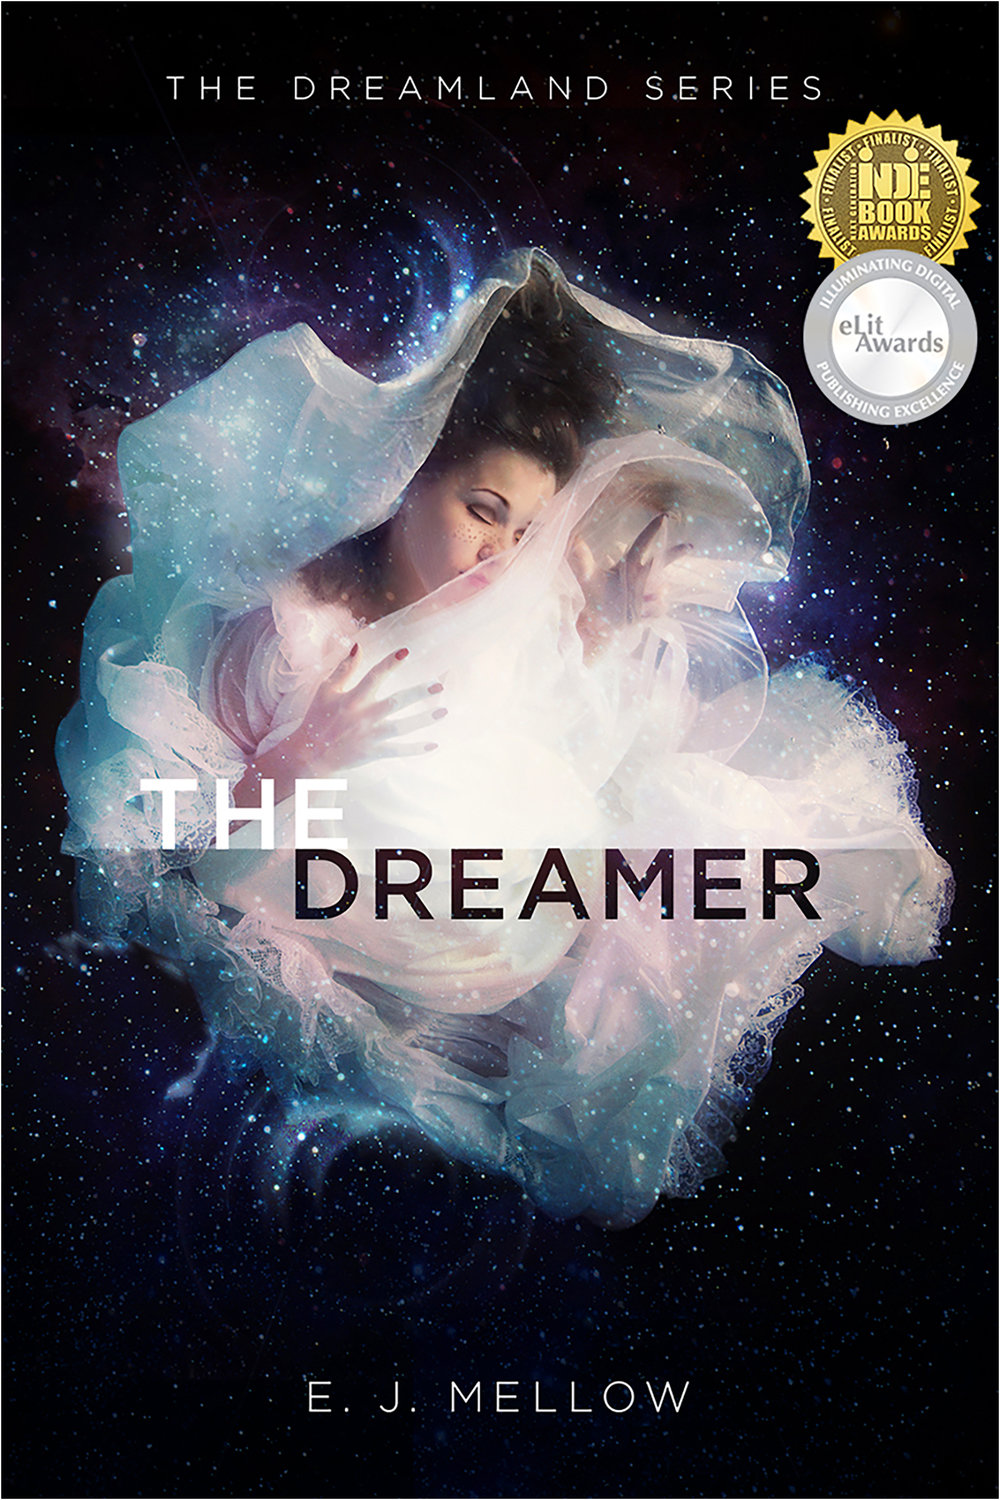 THEDREAMER_BookCover_online with awards_stroke.jpg